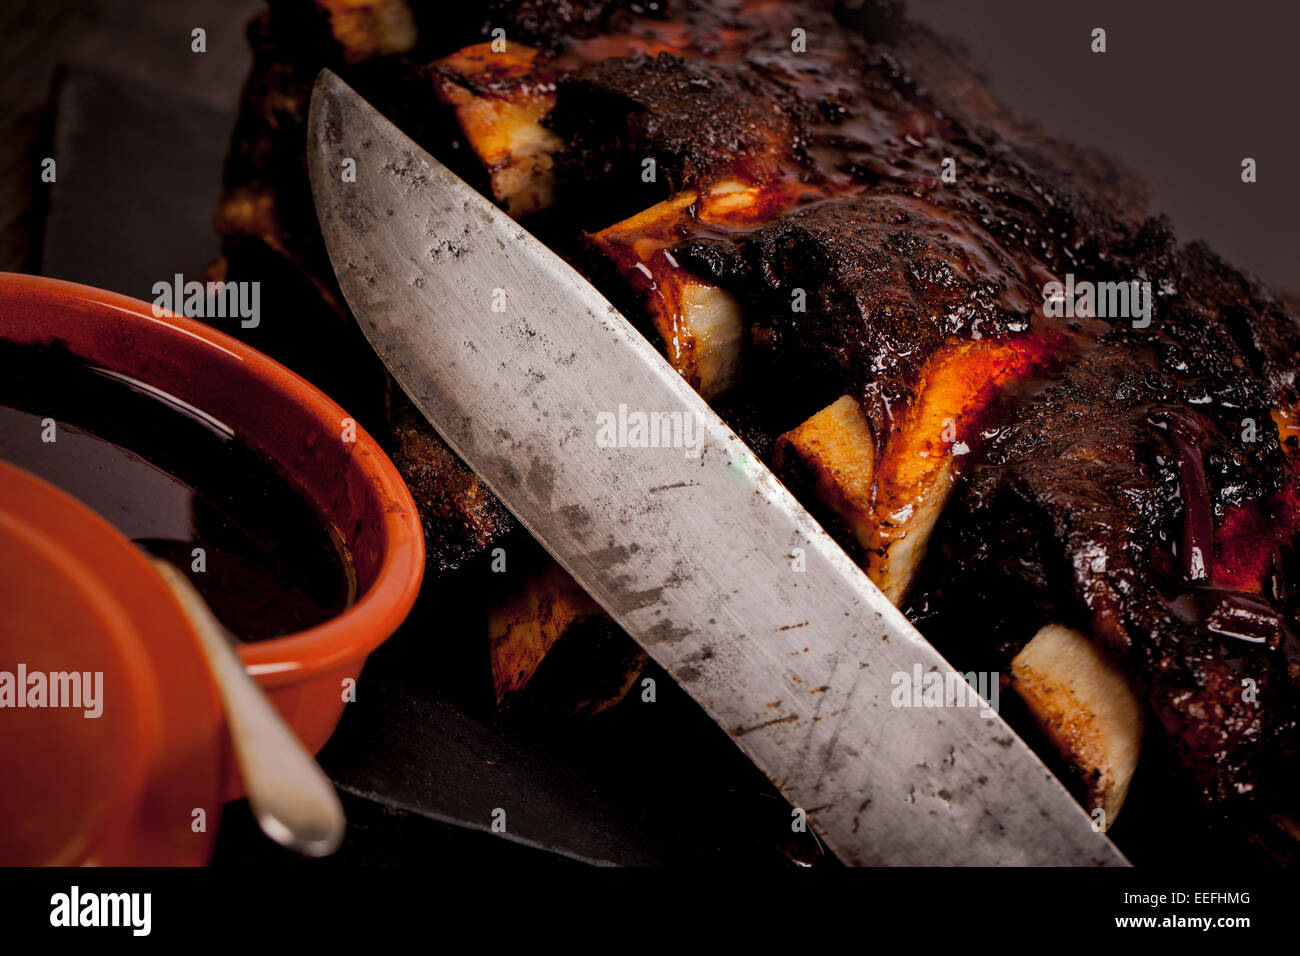 Beef ribs cooked on the BBQ and served with sweetcorn and a red wine souse. - Stock Image